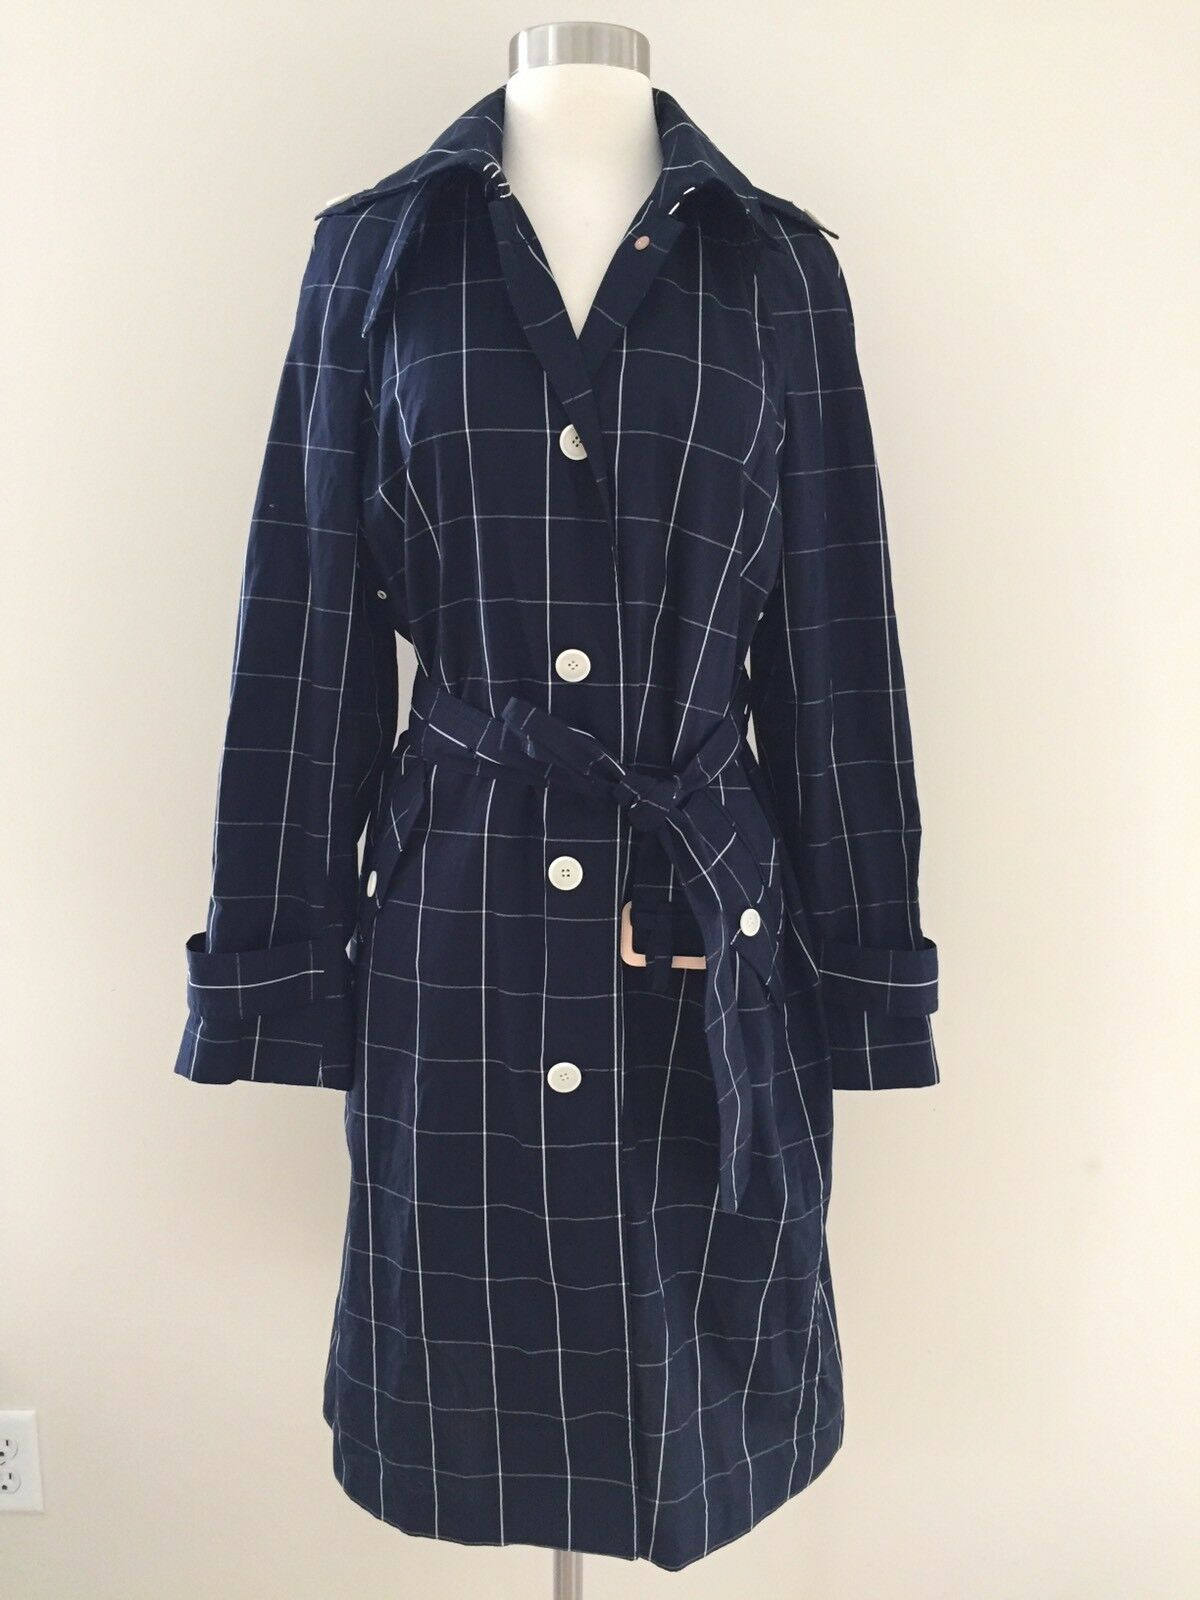 JCrew  258 Collection Trench Coat in Windowpane Sz 10 Navy bluee Cream G2383